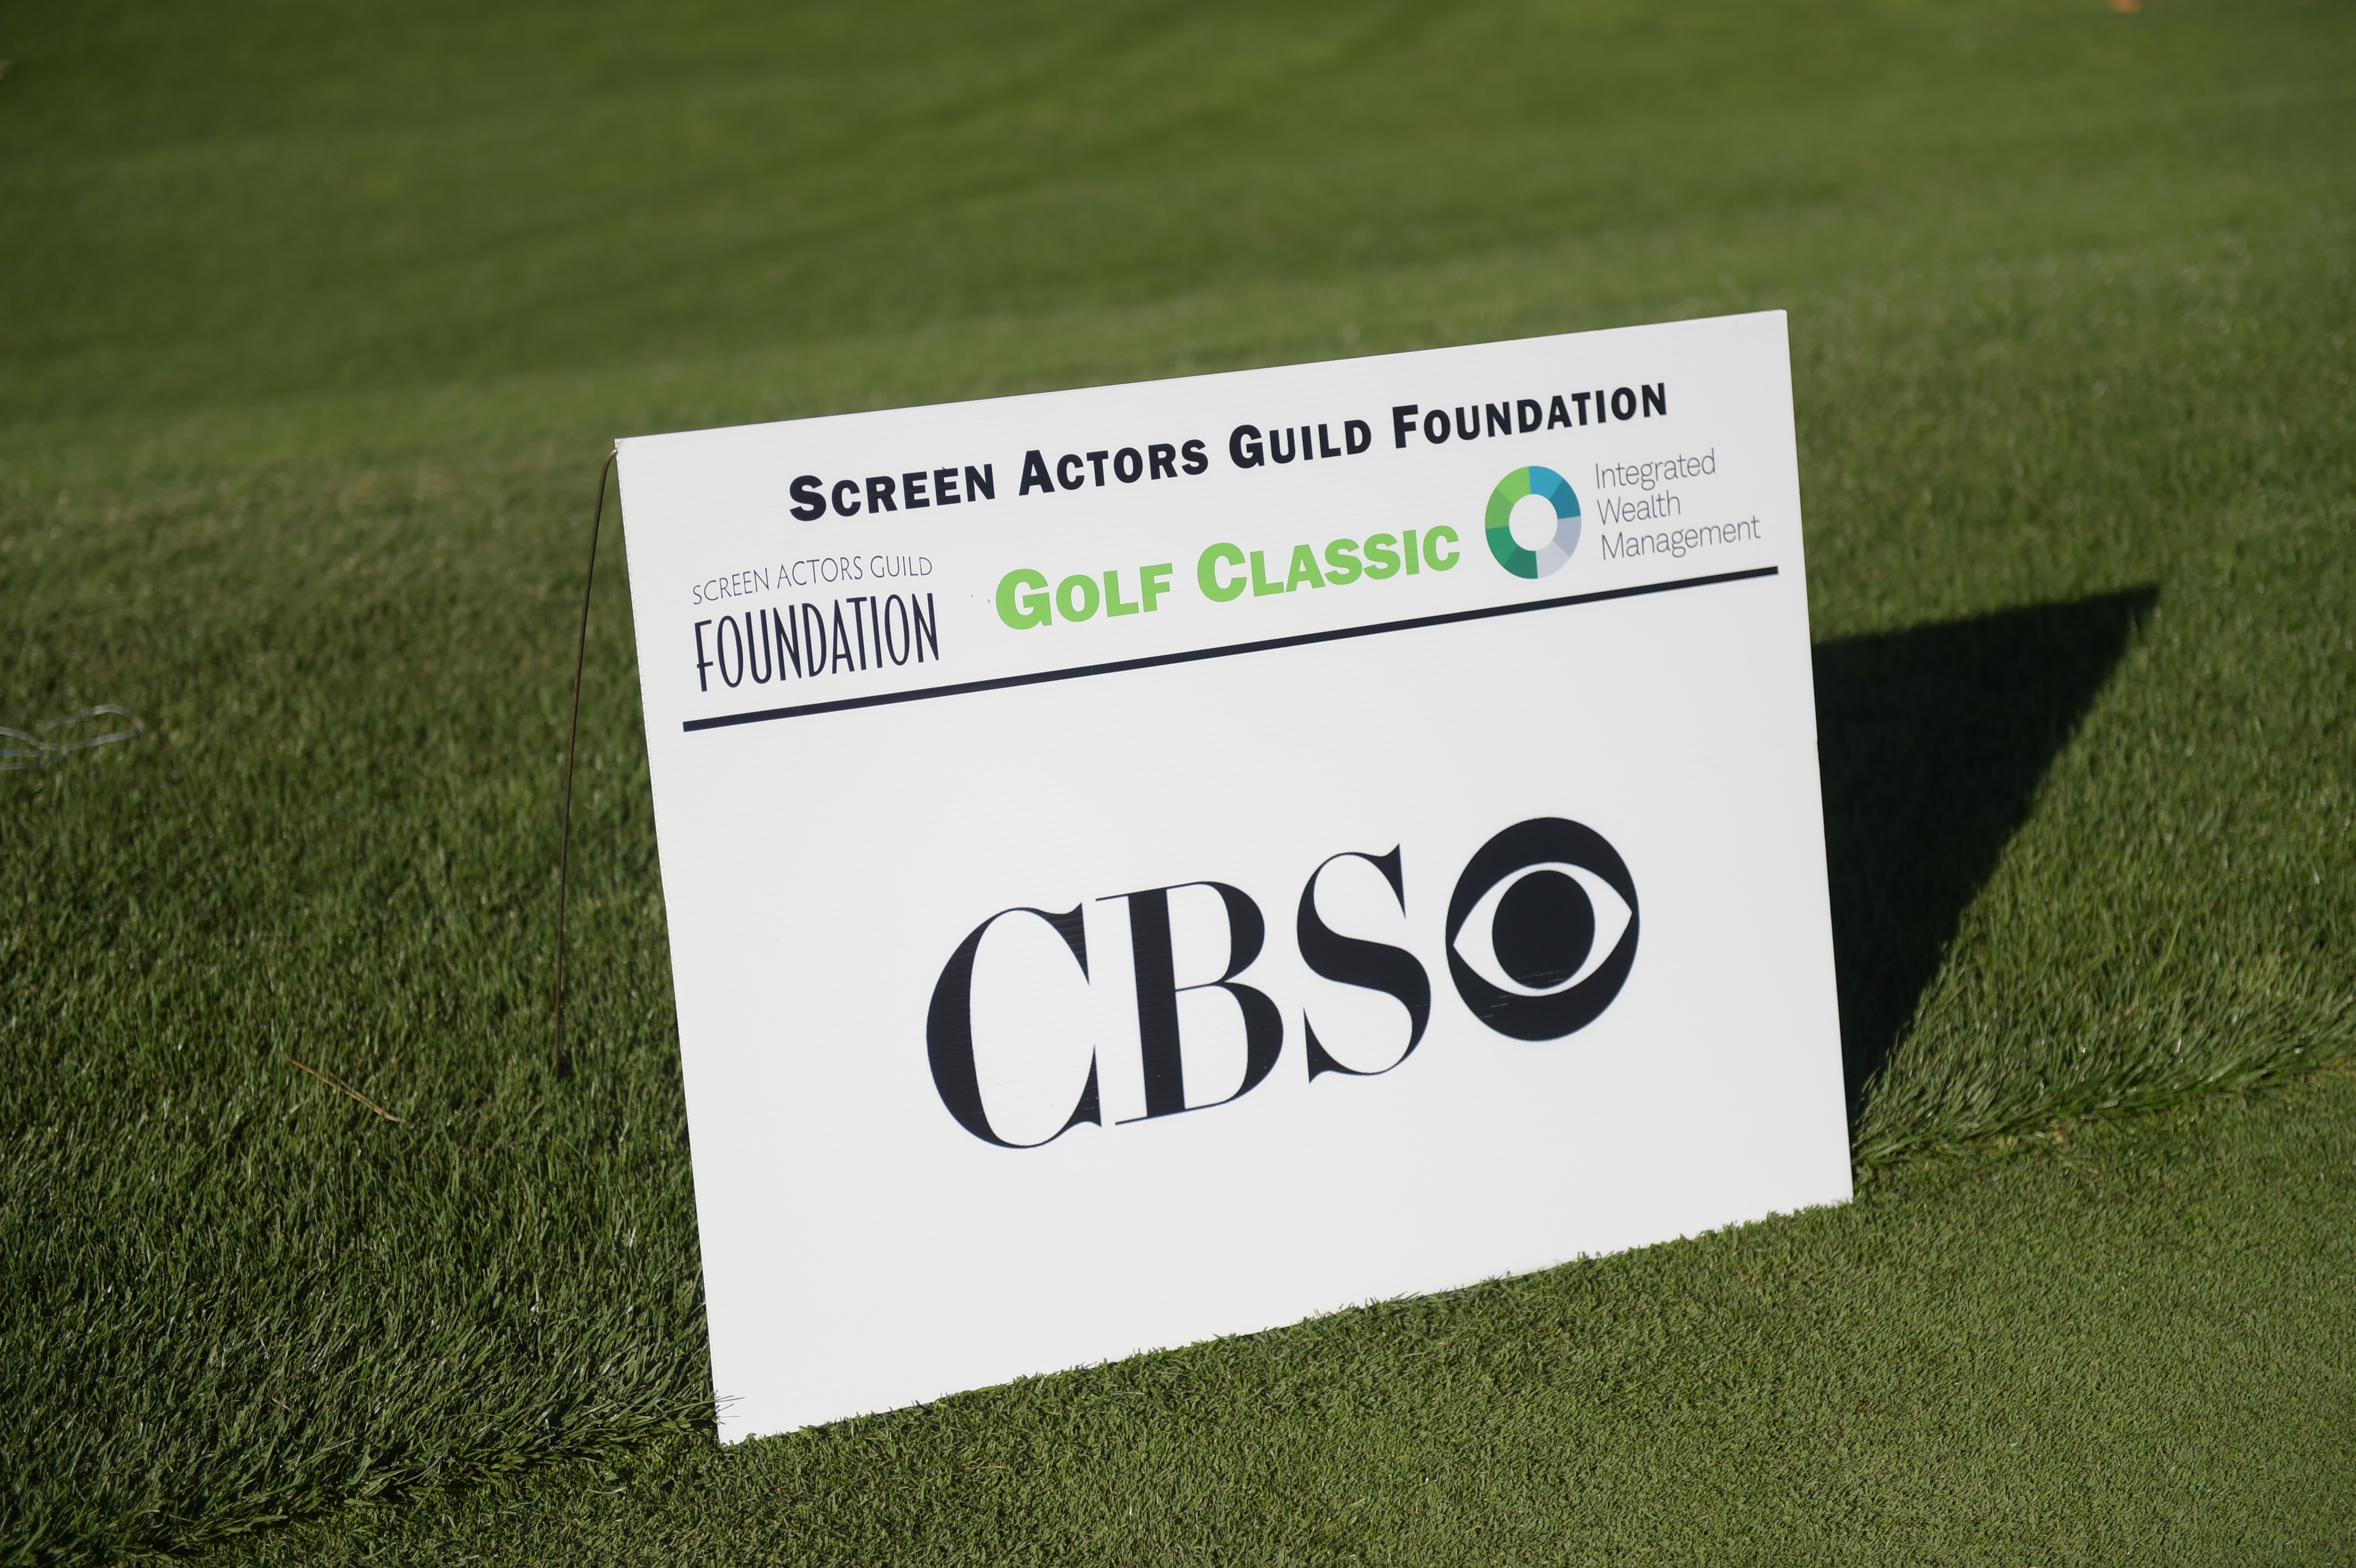 CBS sponsors The Screen Actors Guild Foundation's 6th Annual Los Angeles Golf Classic. (Photo by Jason Kempin/Getty Images for The Screen Actors Guild Foundation)